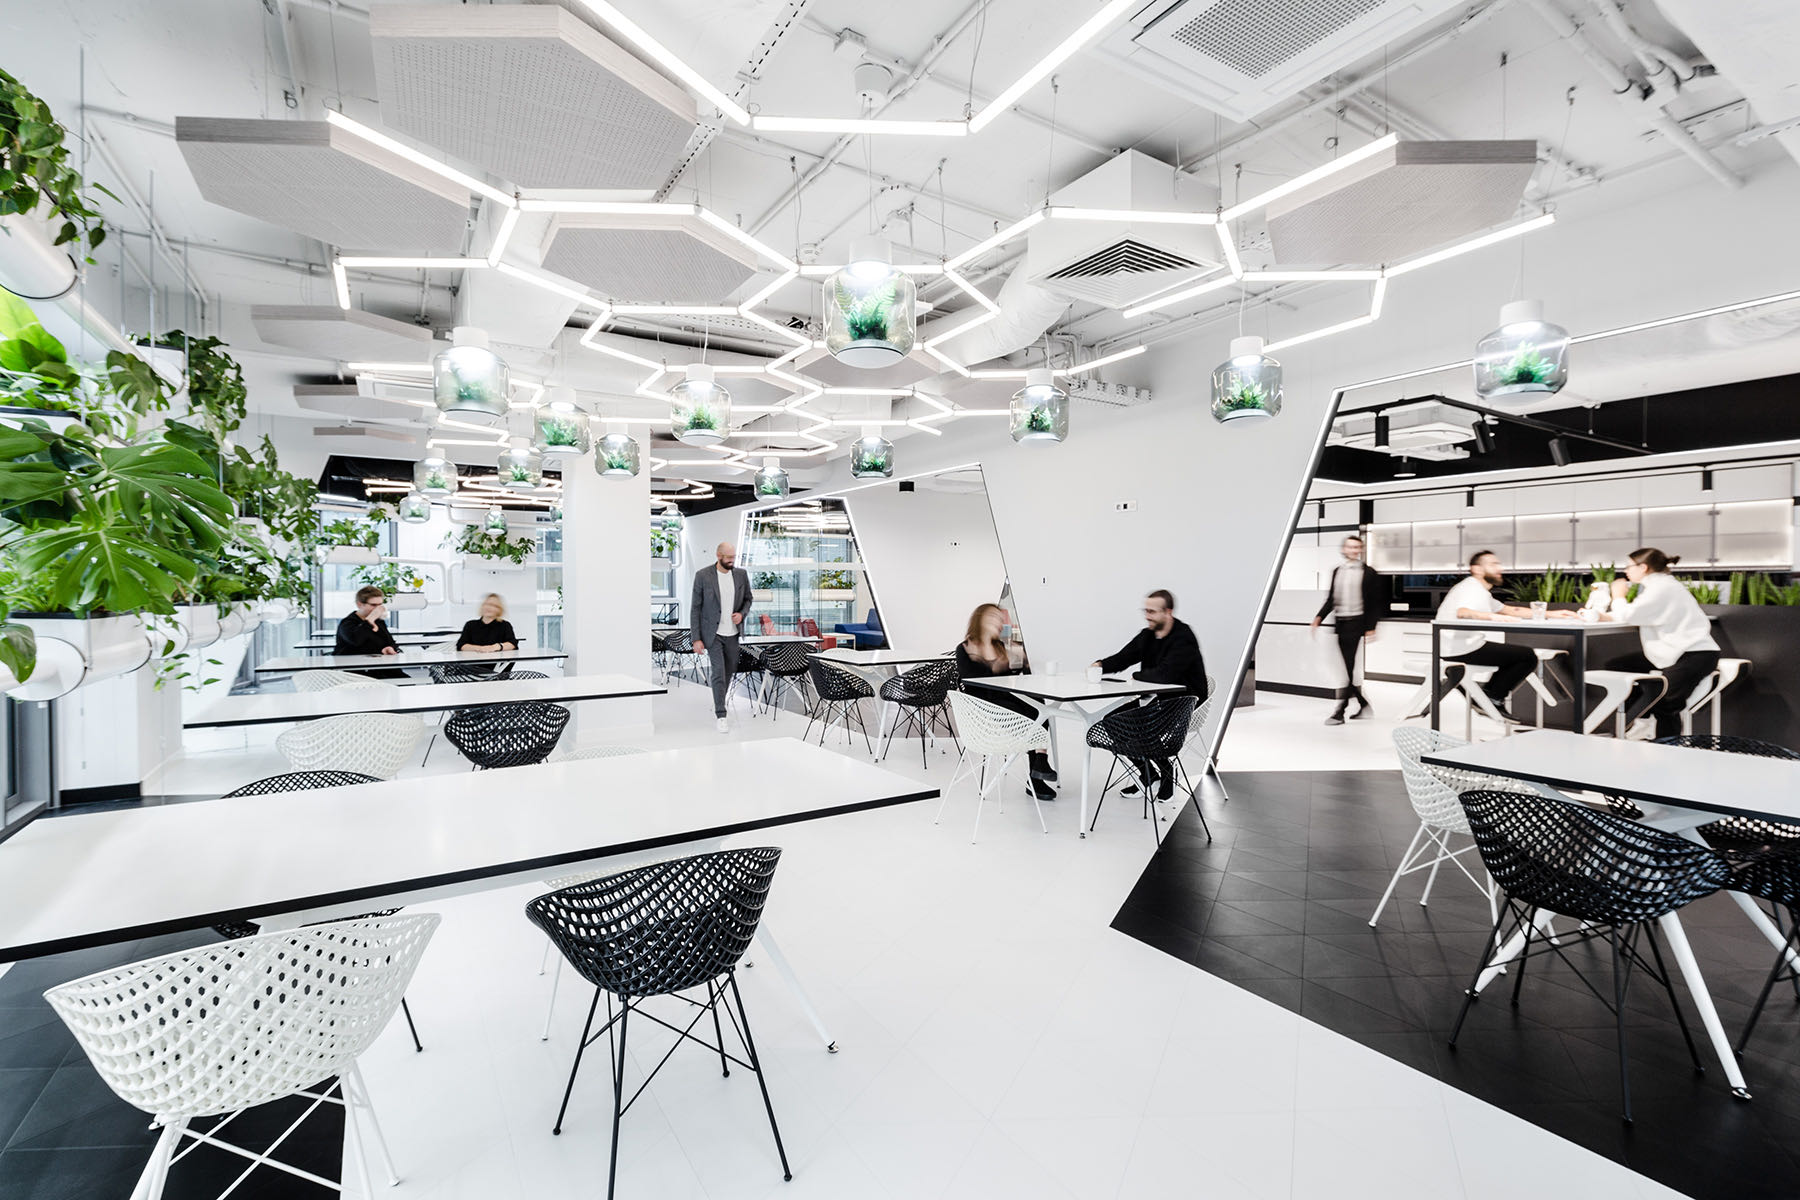 A Look Inside Nordea's Contemporary Warsaw Office